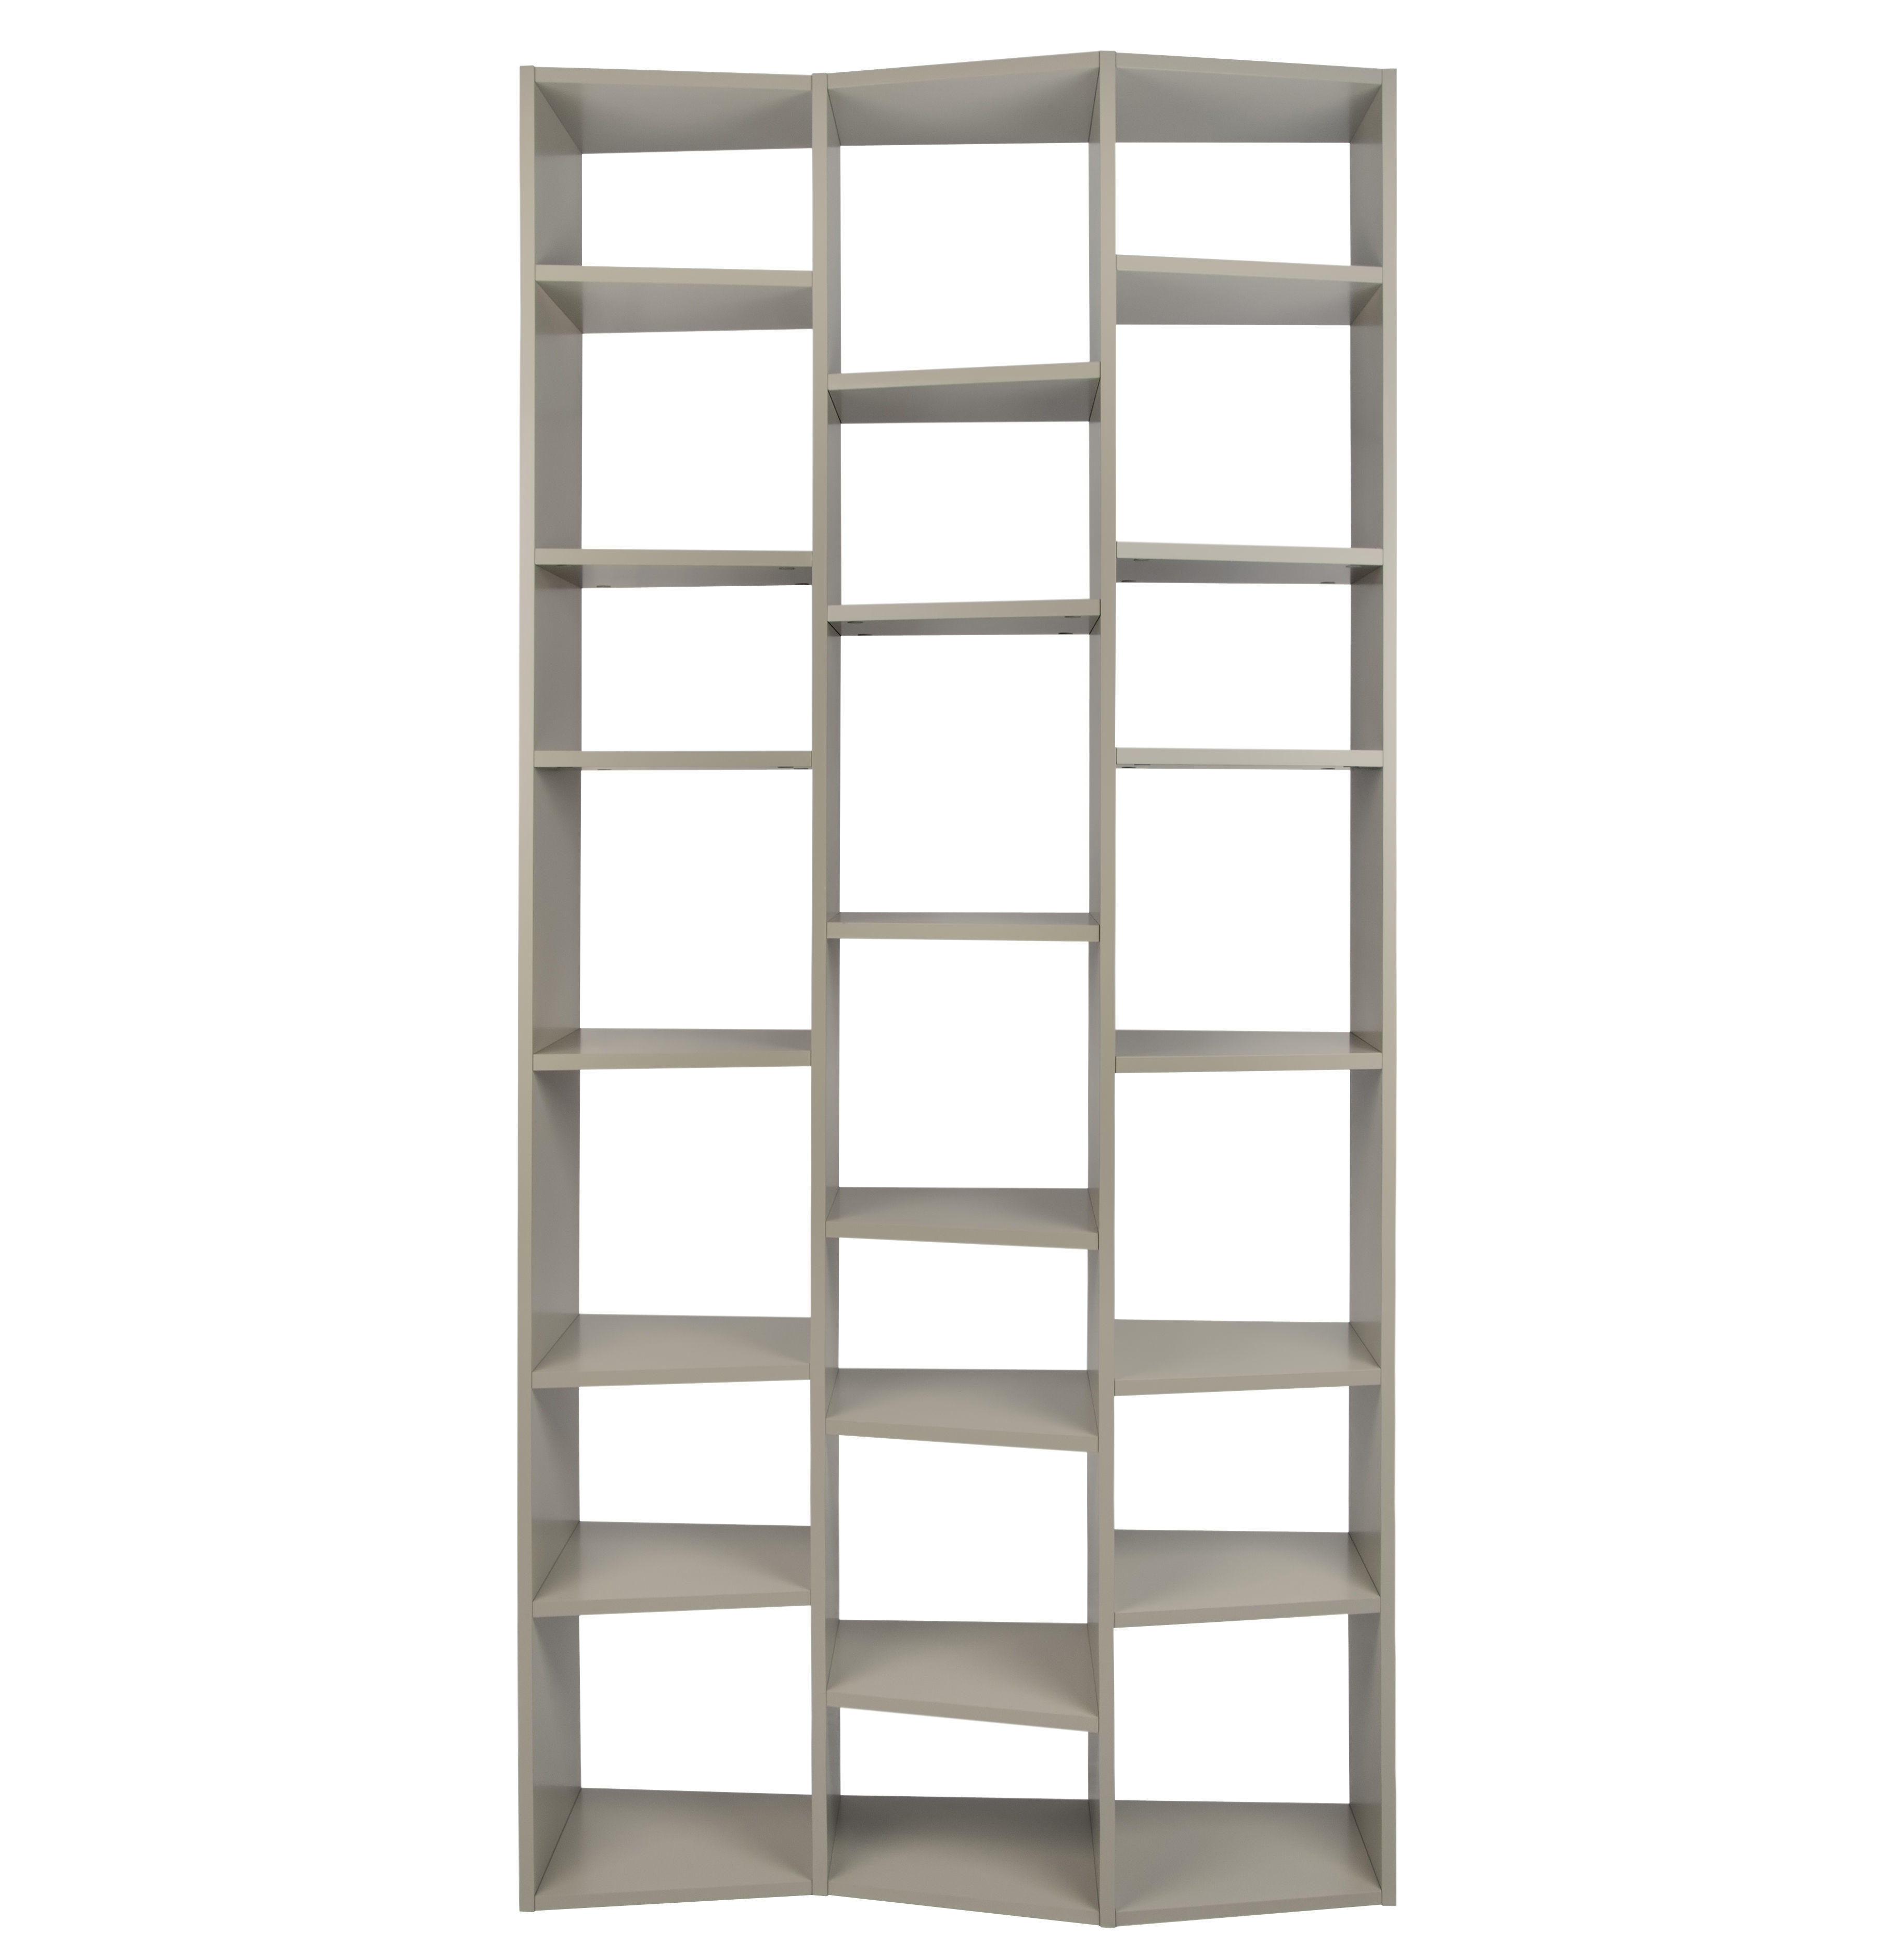 Furniture - Bookcases & Bookshelves - New York 007 Bookcase - L 110 x H 224 cm by POP UP HOME - Grey - Painted chipboard